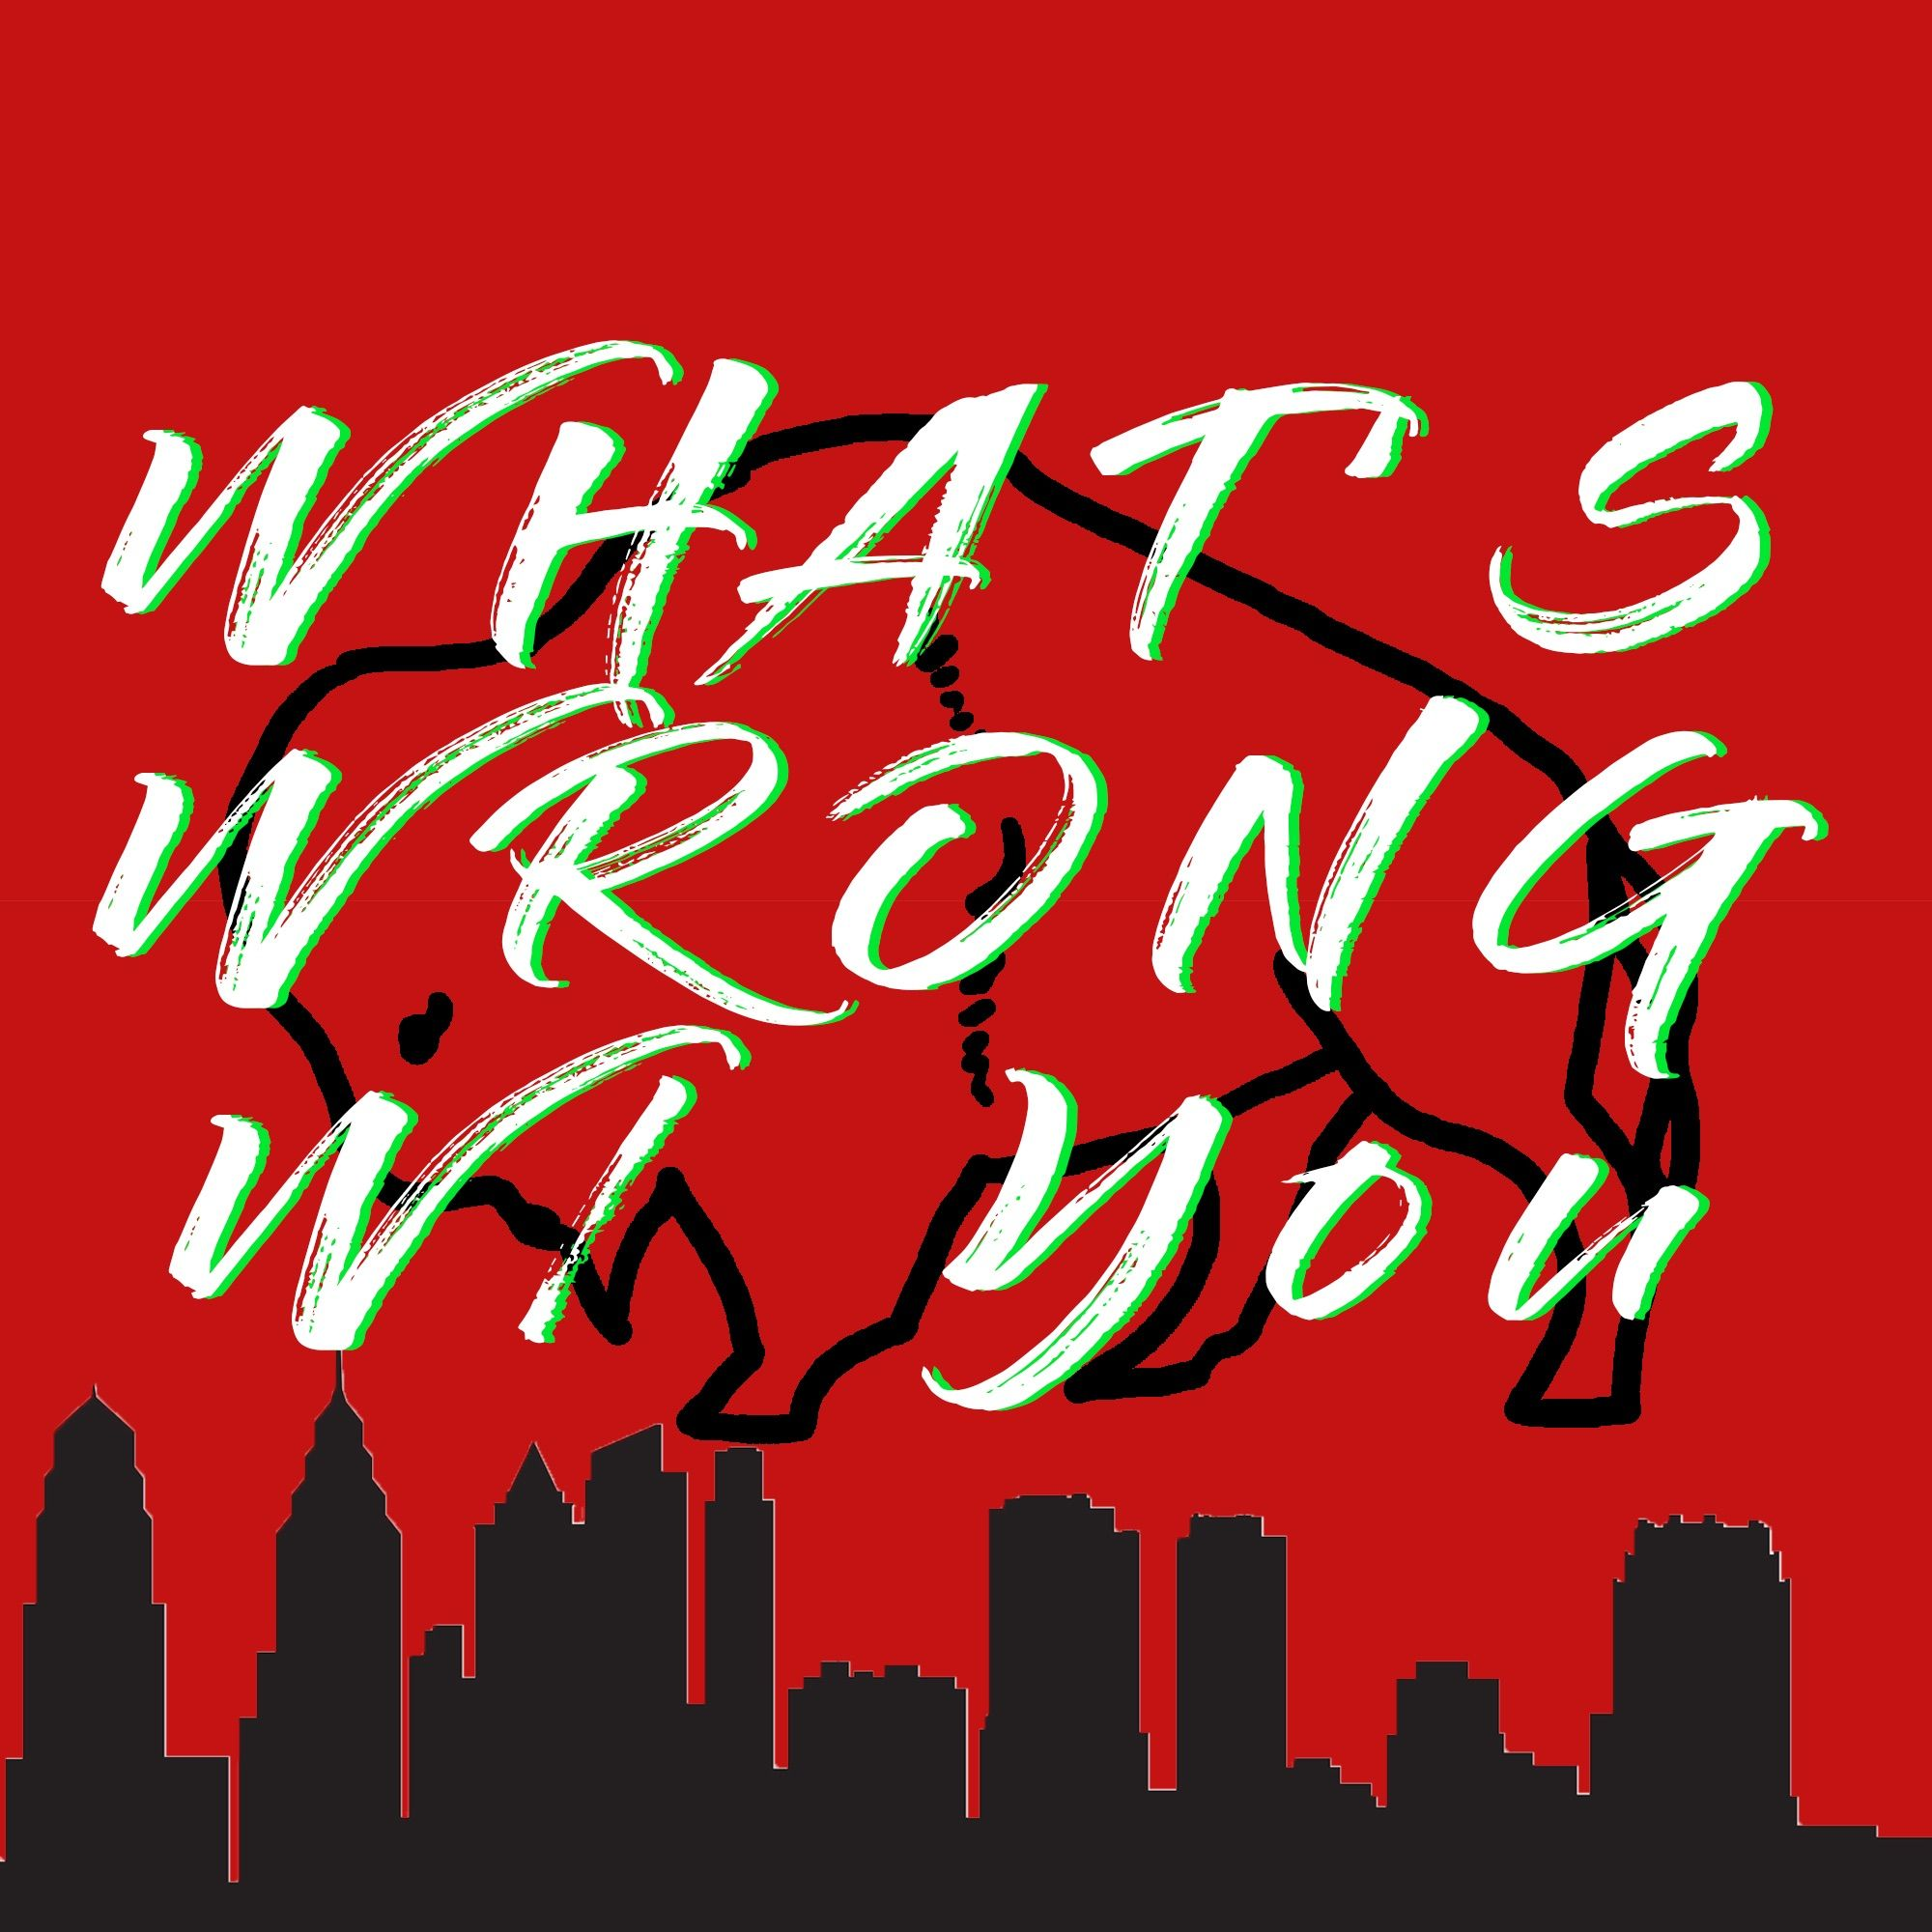 What's wrong with you S1E1